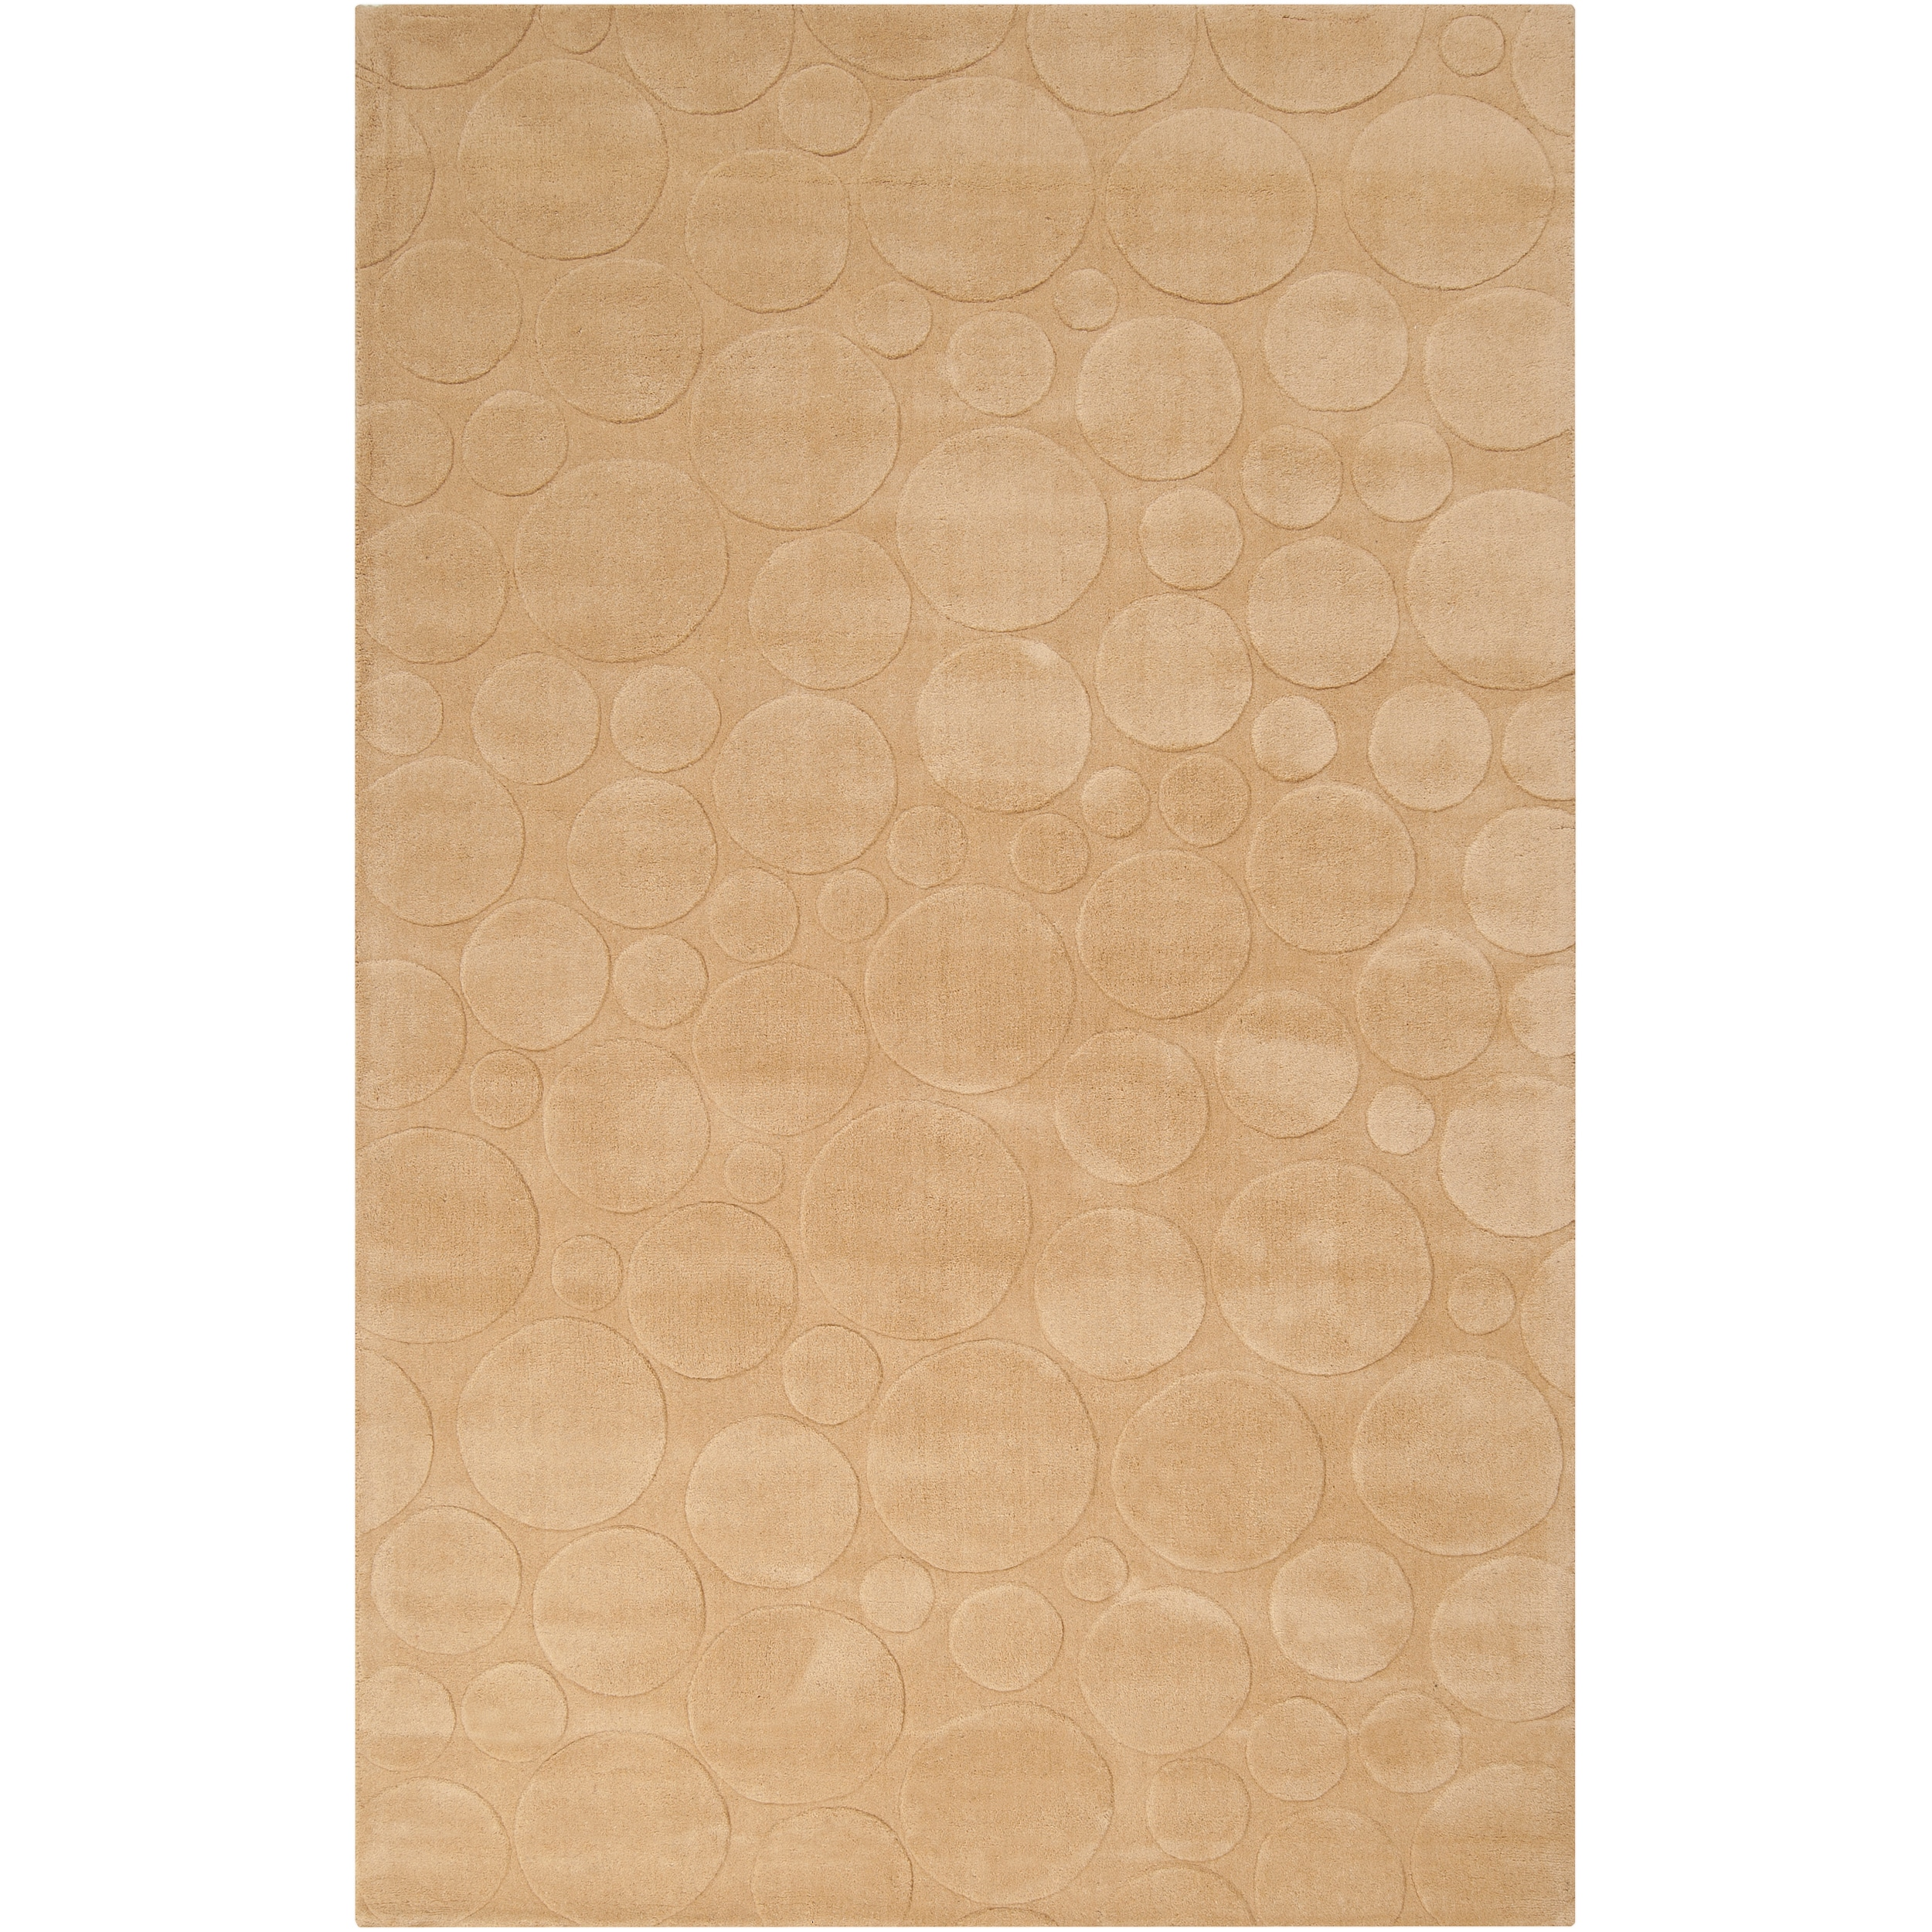 Loomed Tan Scrumptious Geometric Circles Indoor Wool Rug (5' x 8') - Thumbnail 0